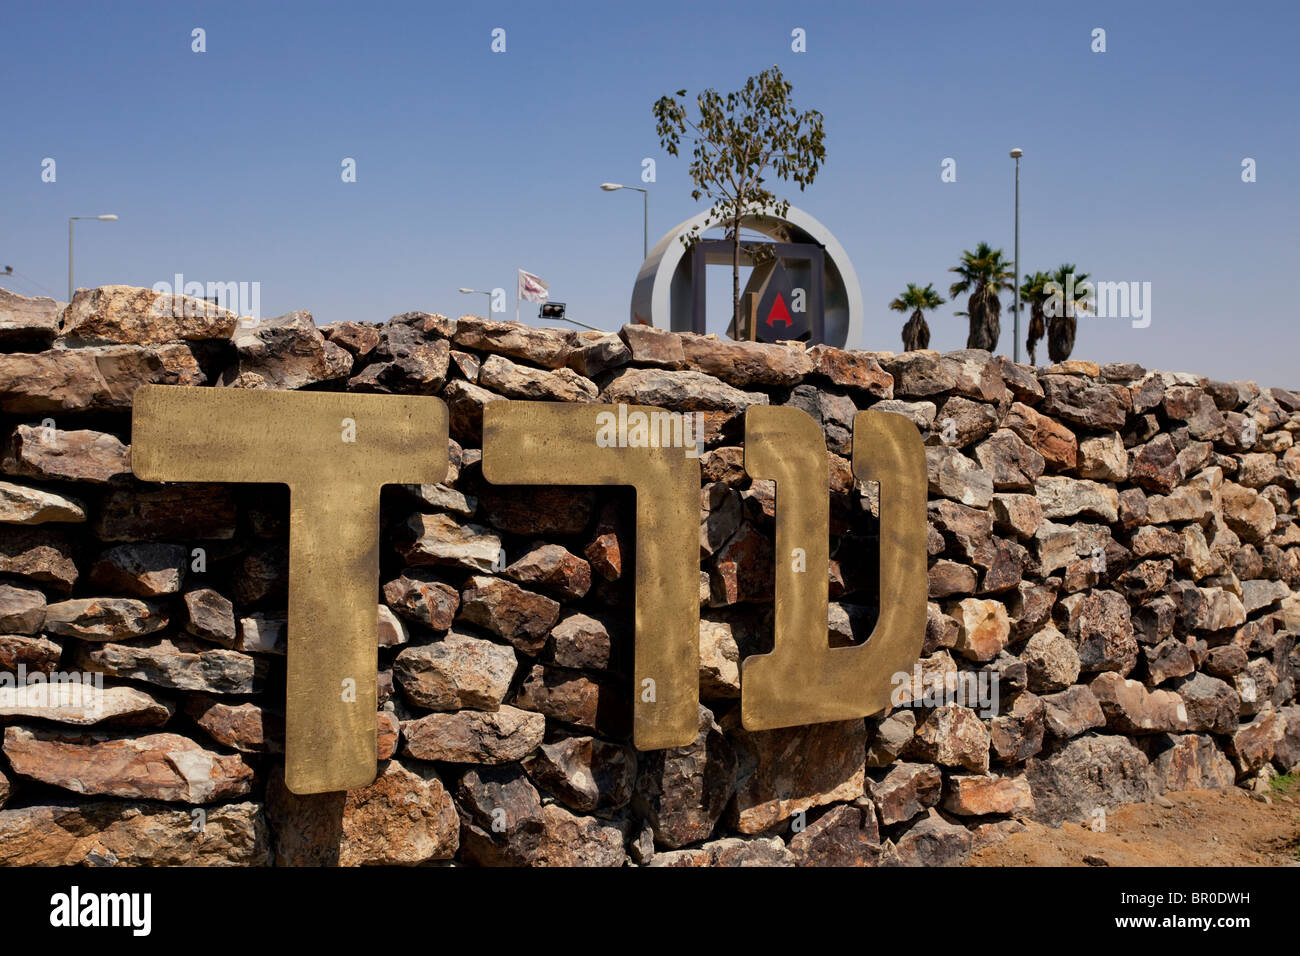 The name of Arad city in Hebrew in Arad a city in the Southern District of Israel located on the border of the Negev - Stock Image